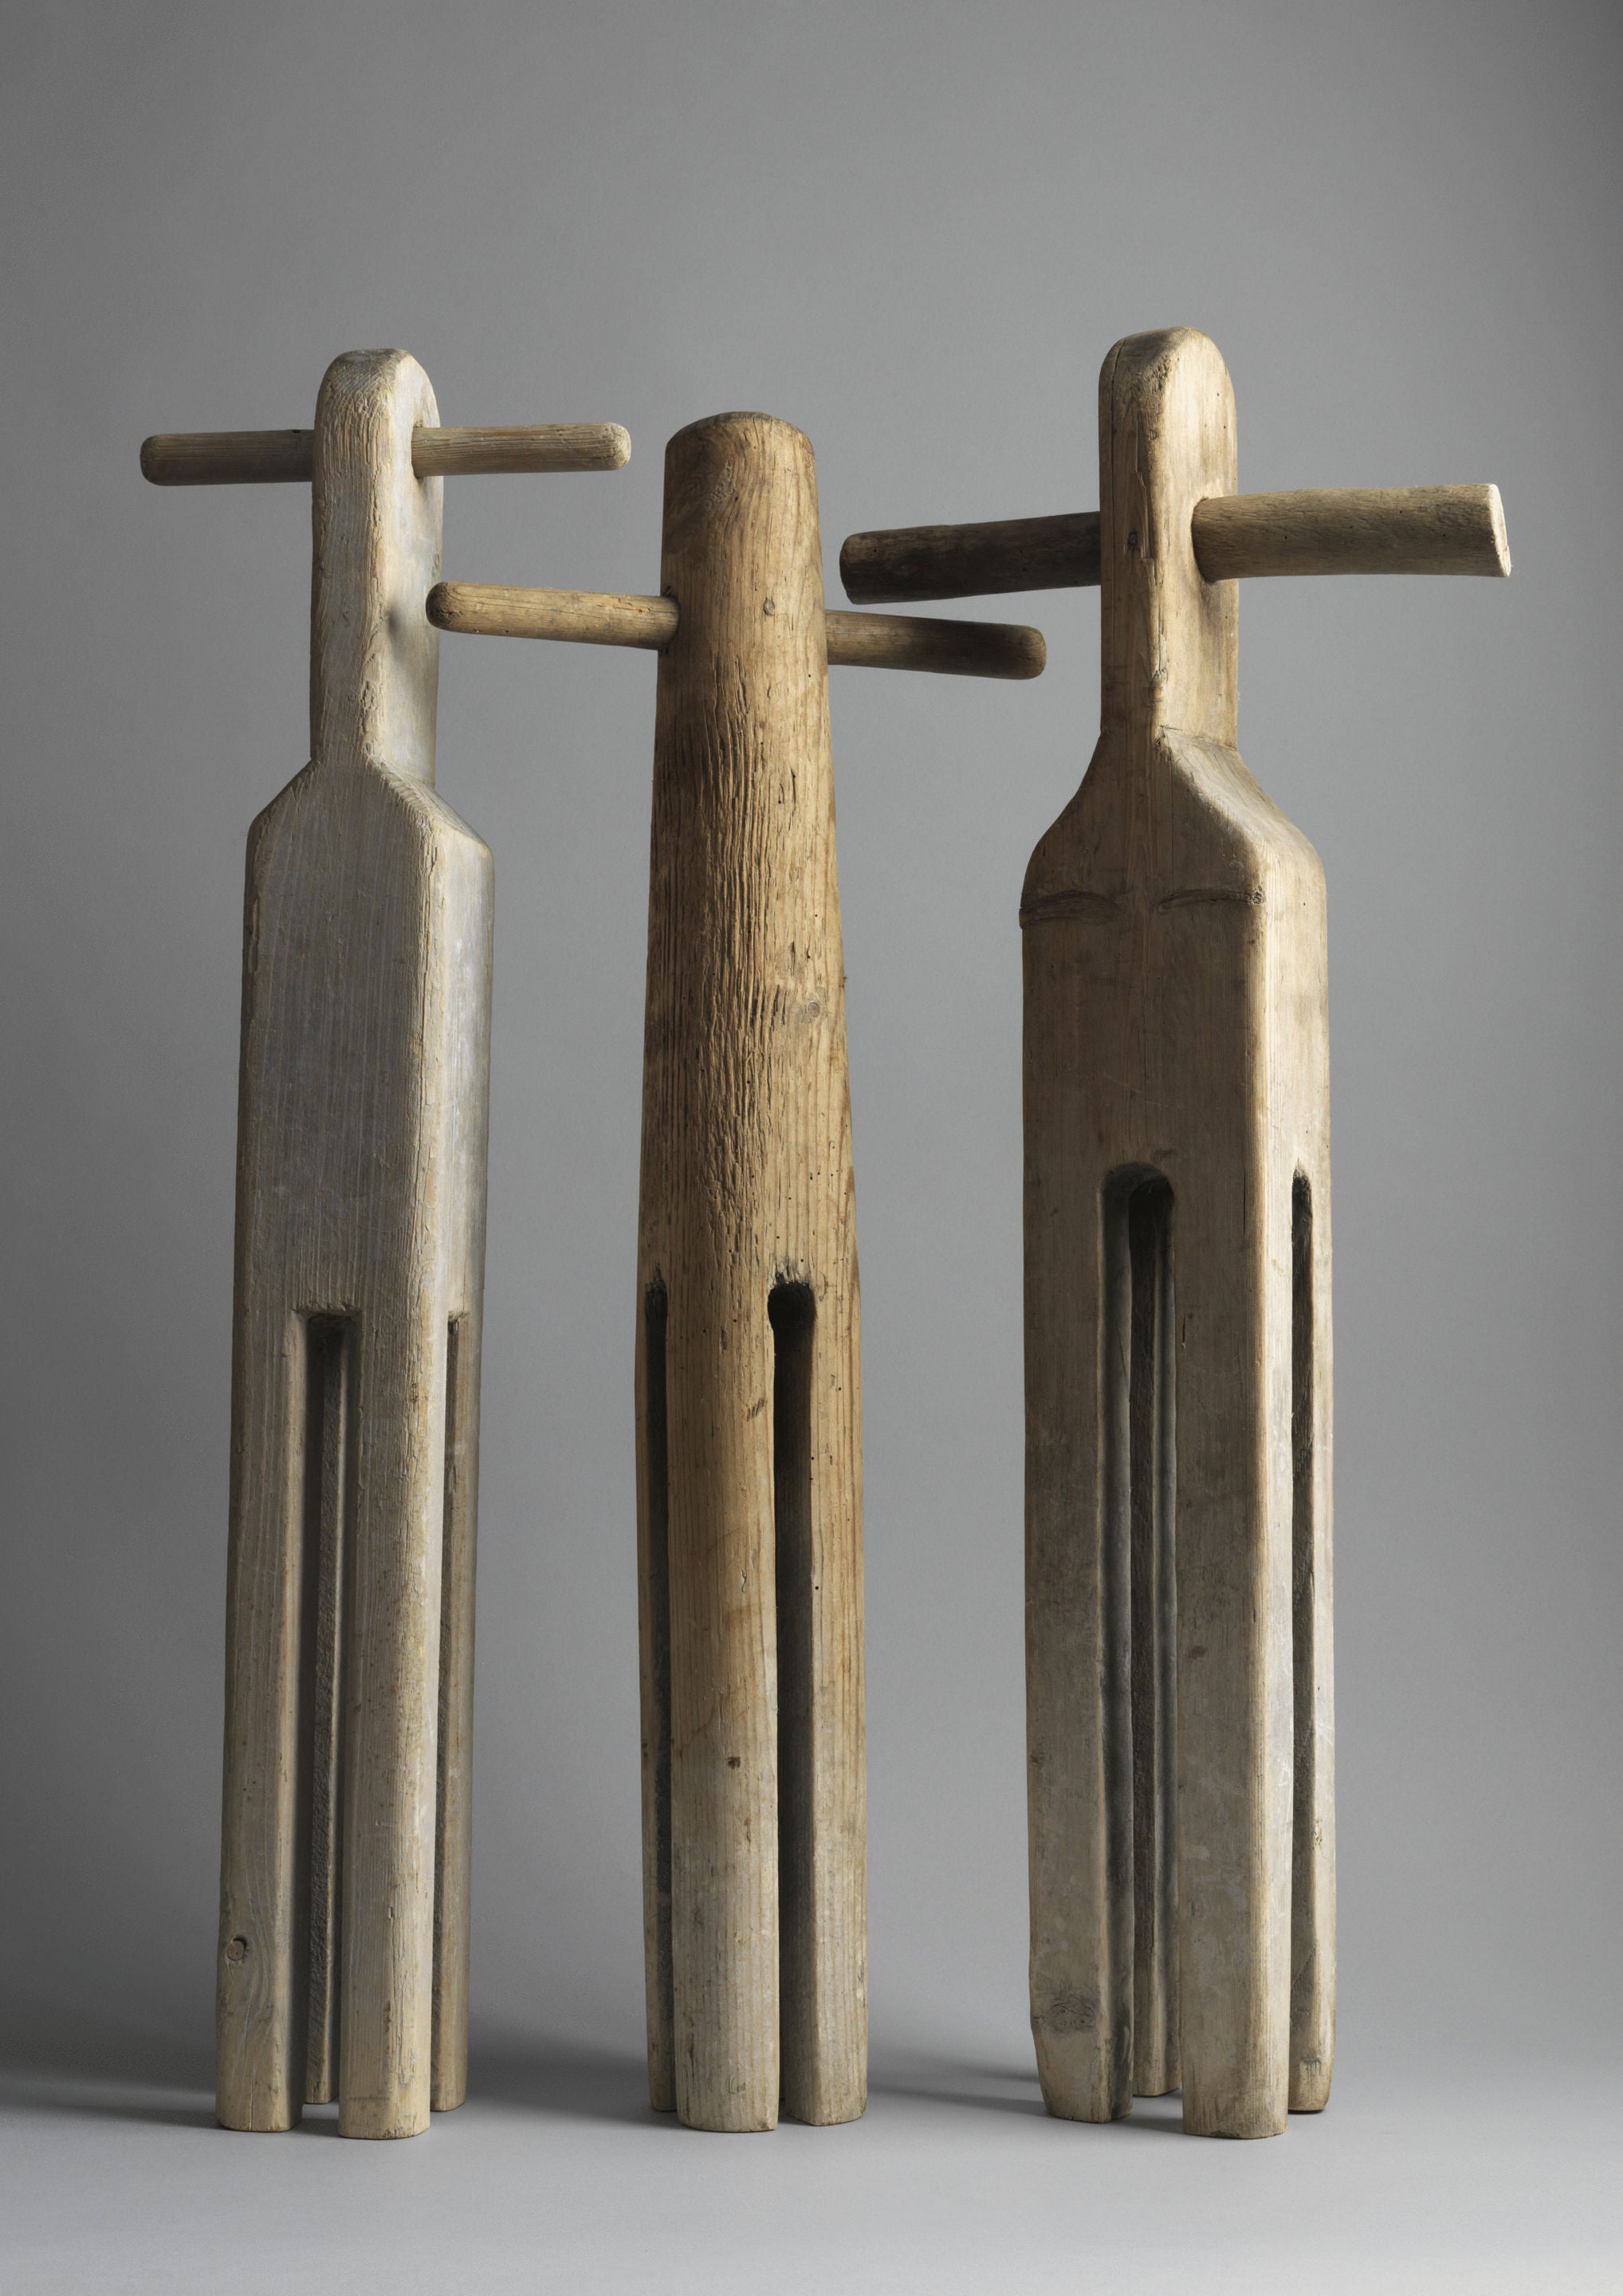 A Collection of Three Sculptural Washing Dollies